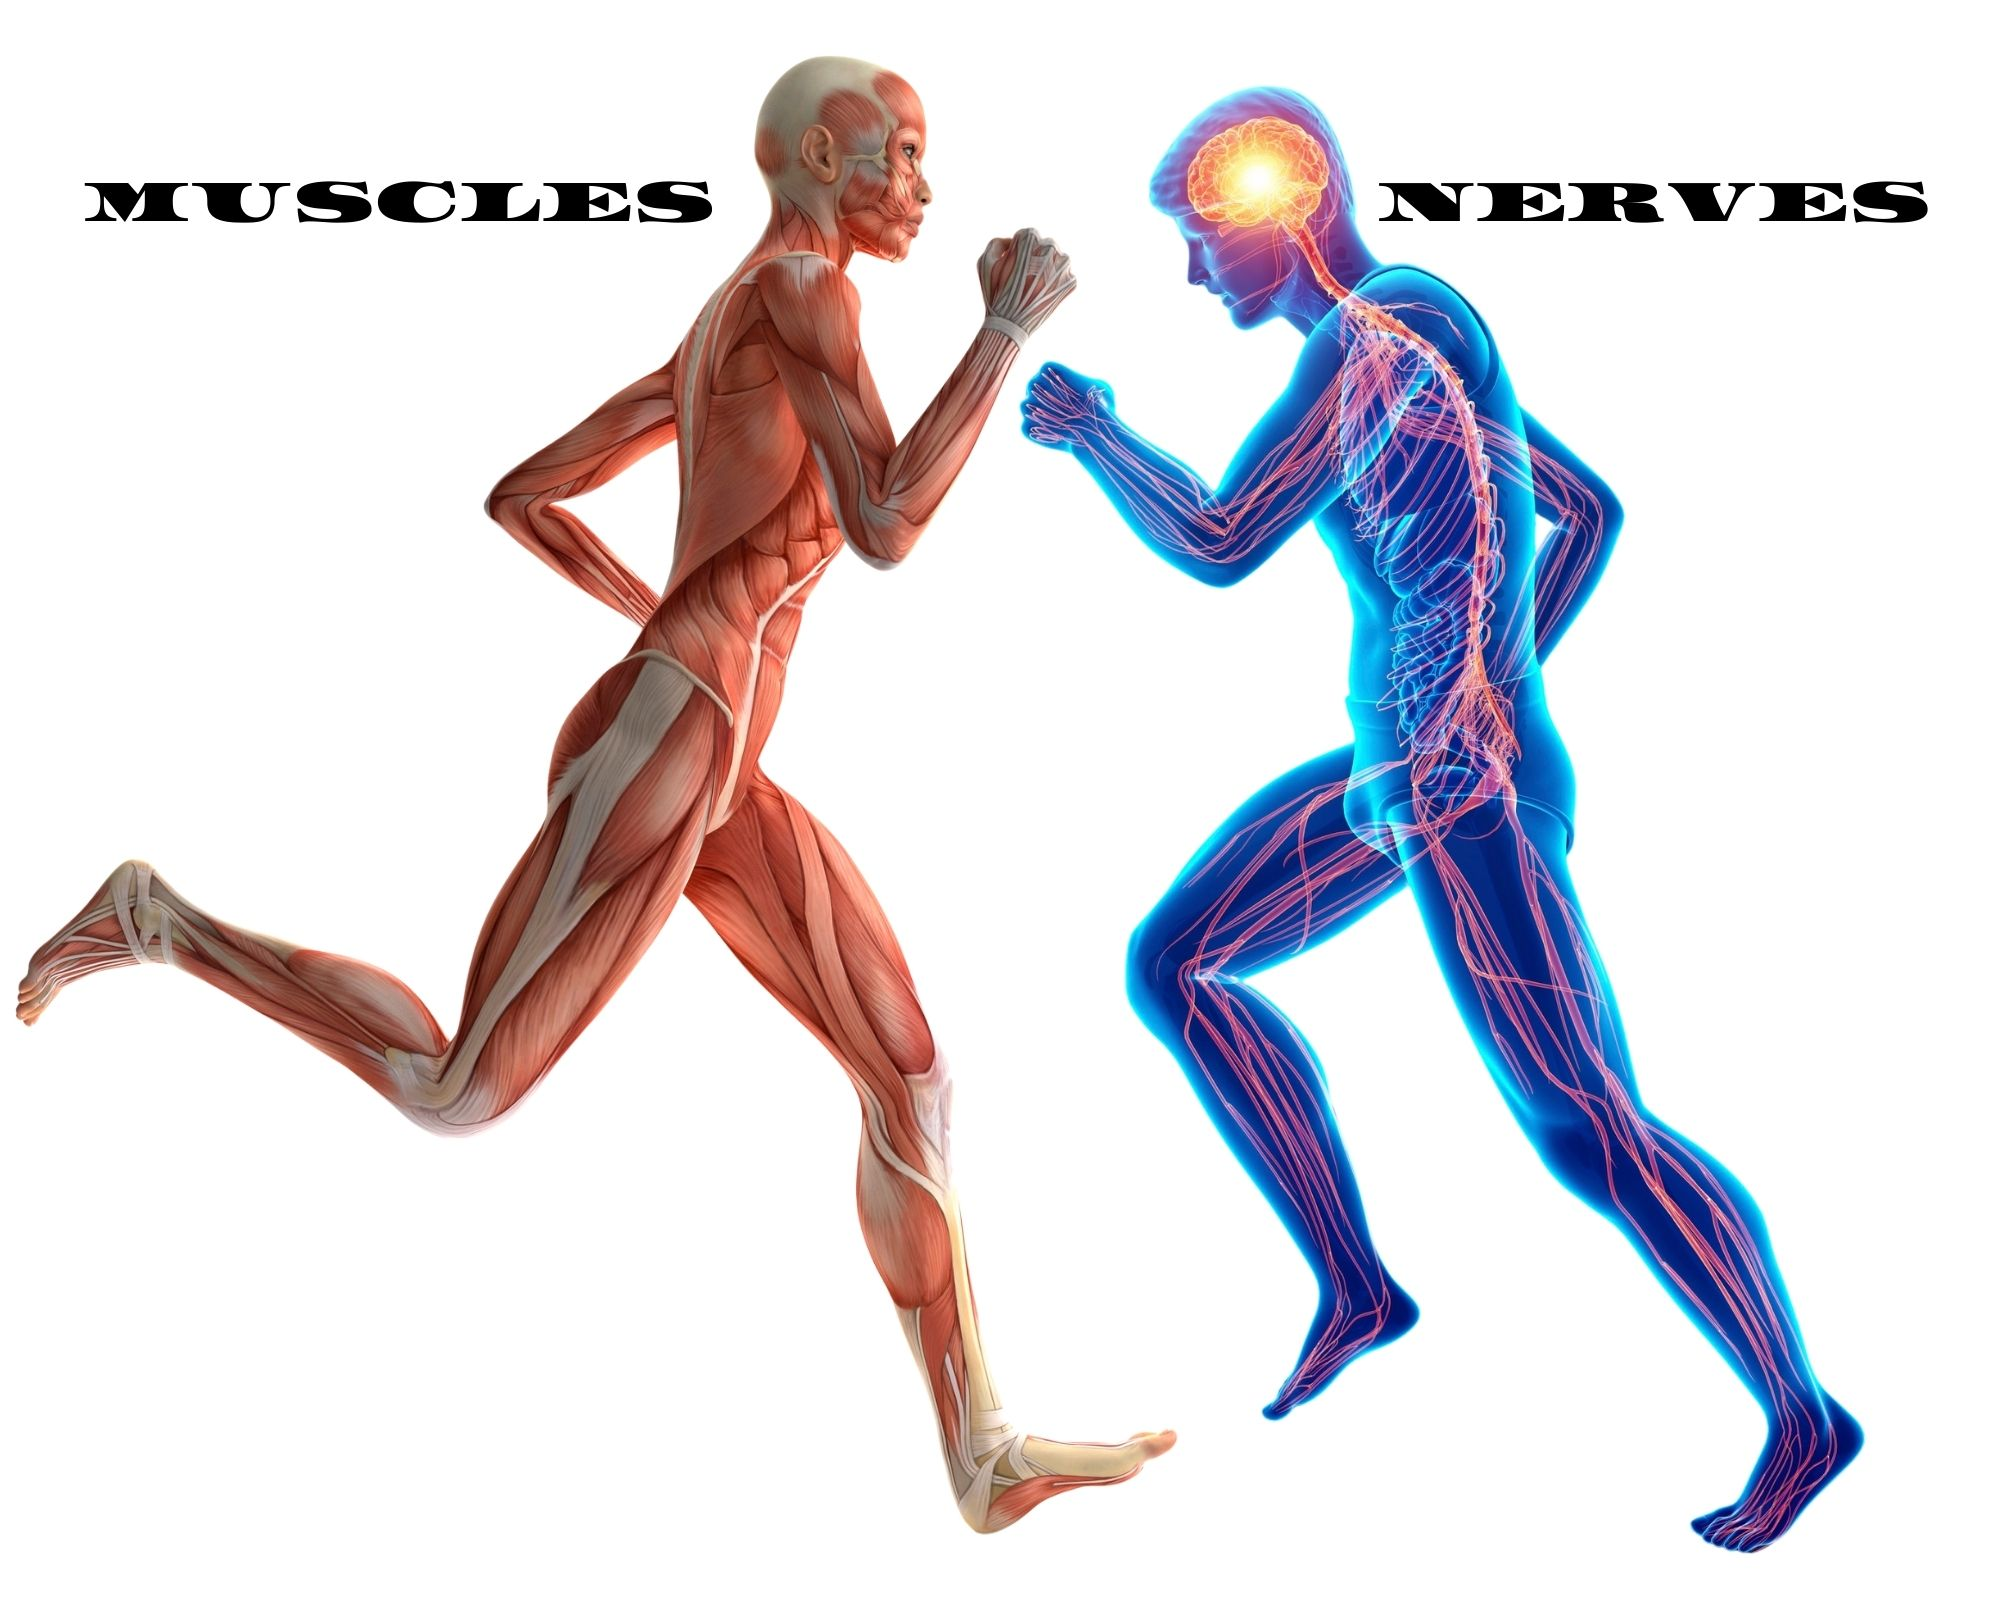 Picture of all the muscles in the body and the nervous system in the body